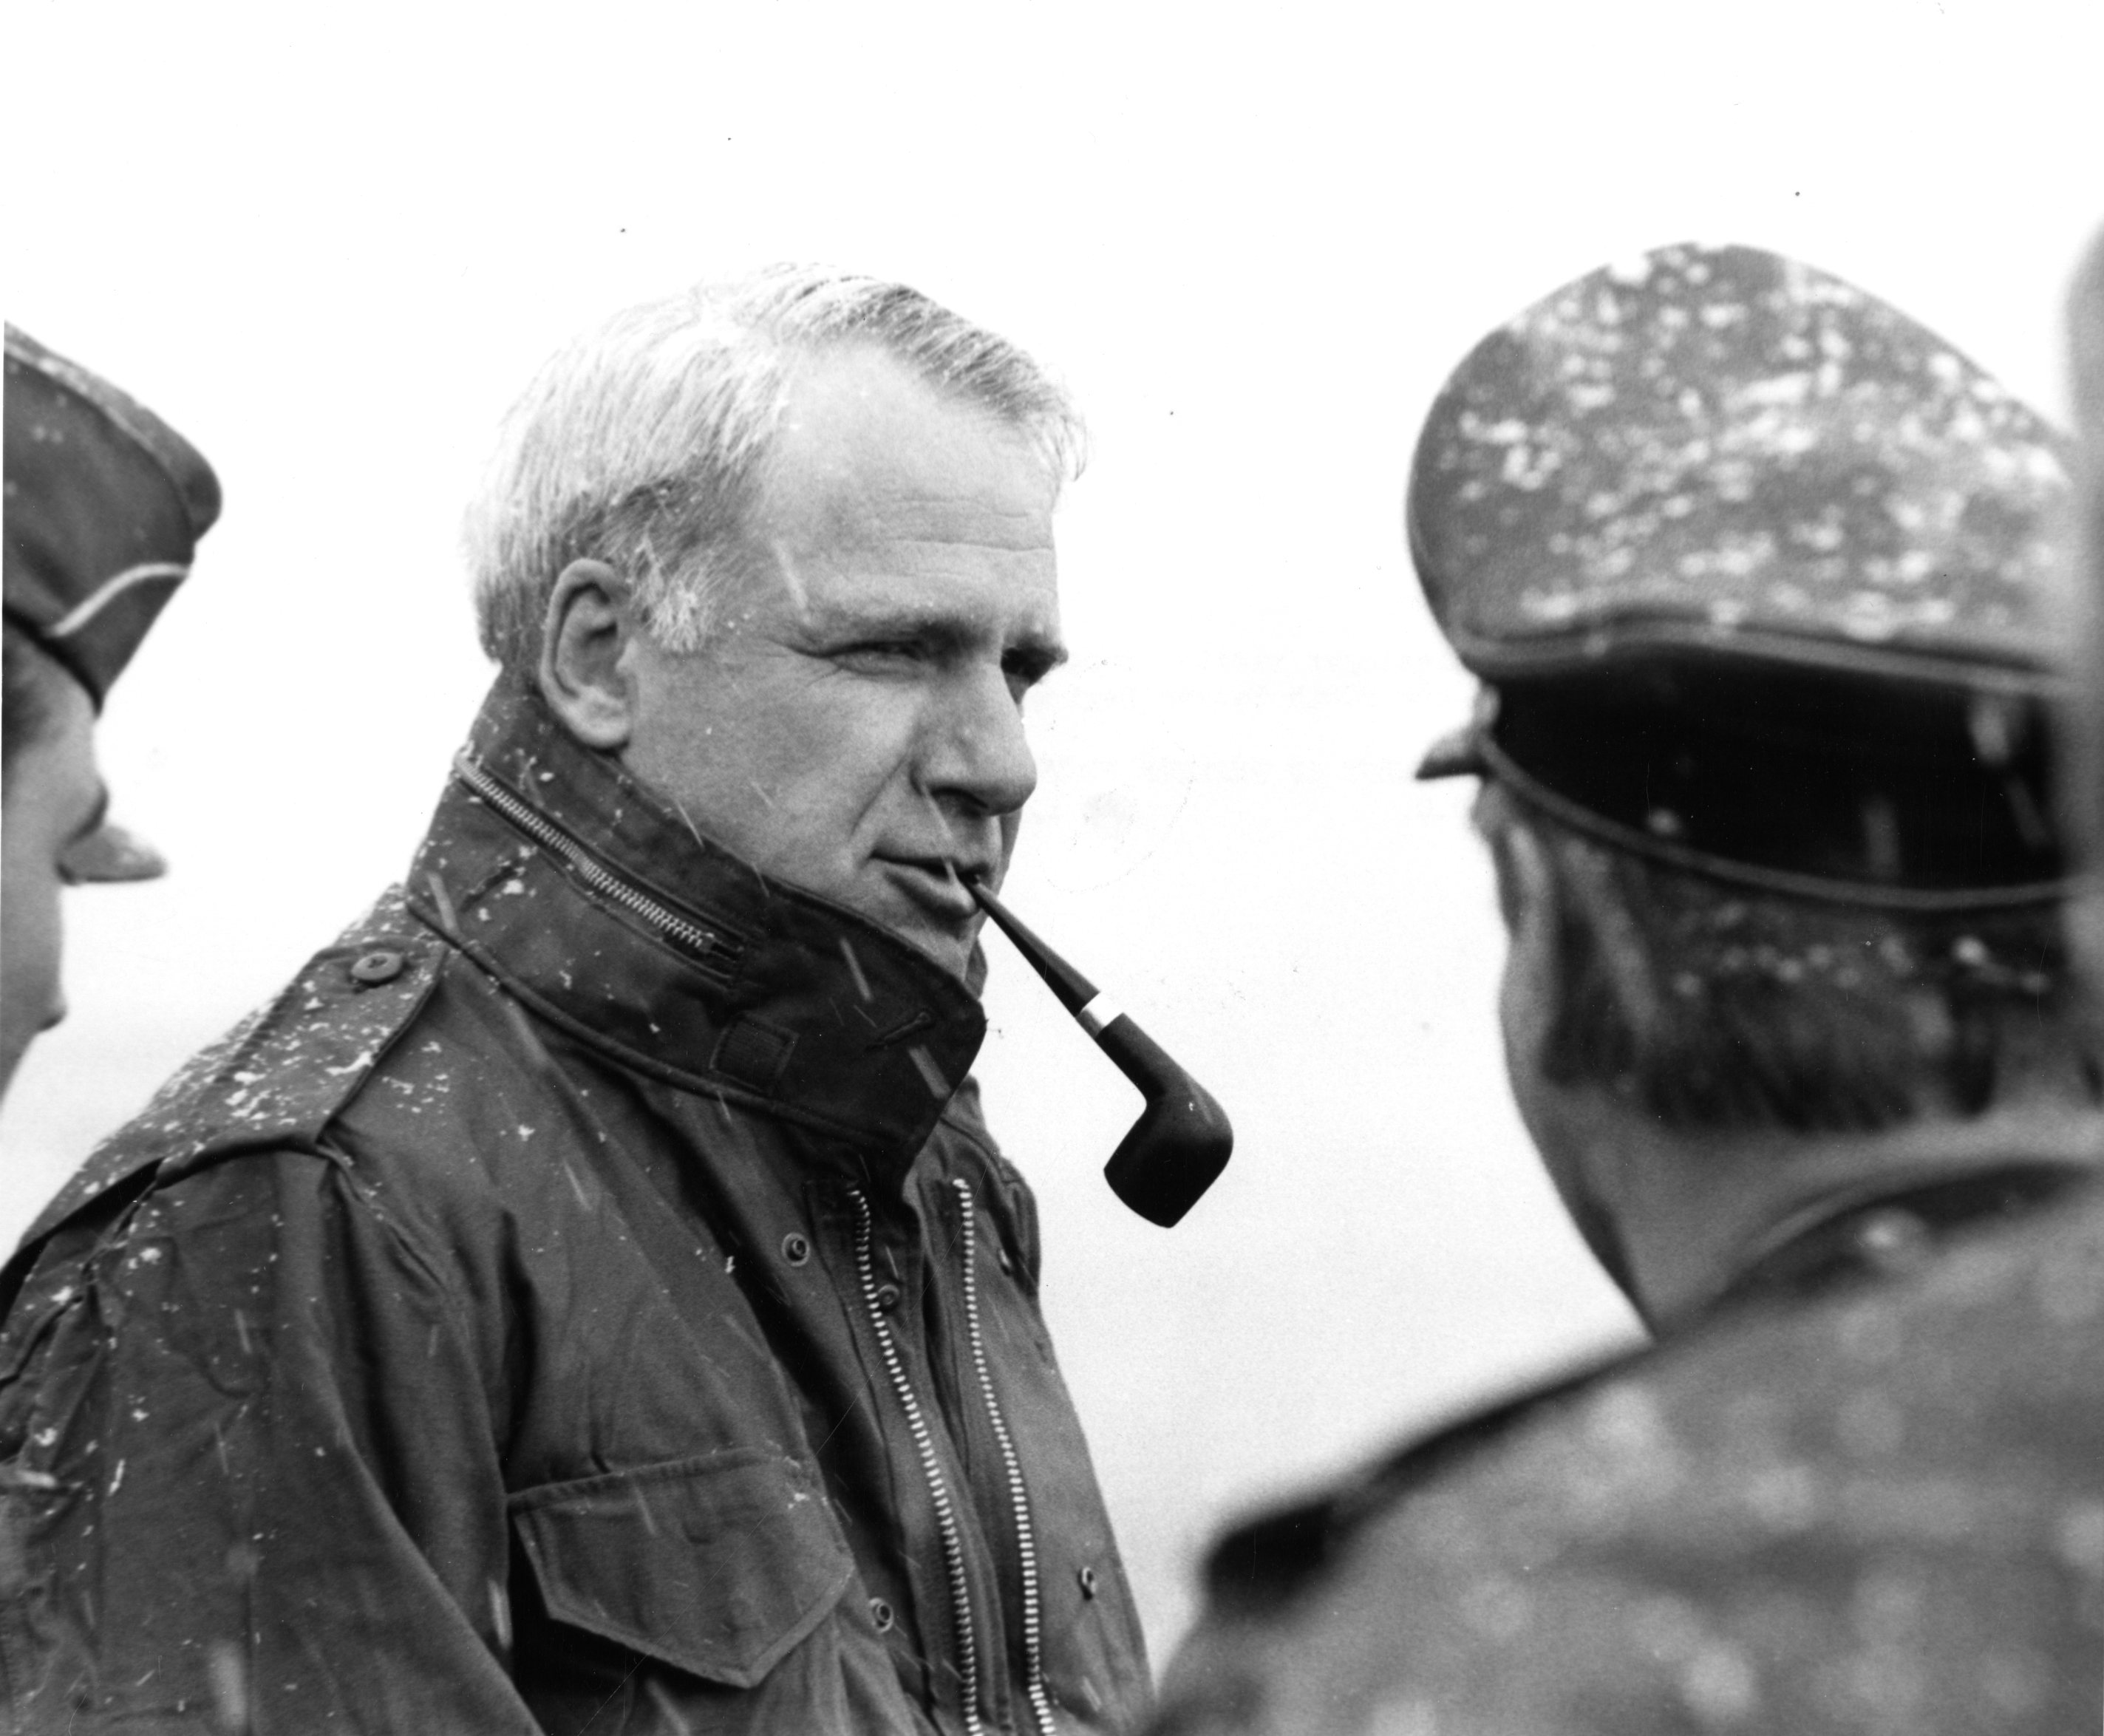 Then Secretary James Schlesinger visits troops of the FRG at Ulm, Germany on May 1, 1974. US Naval Institute Photo